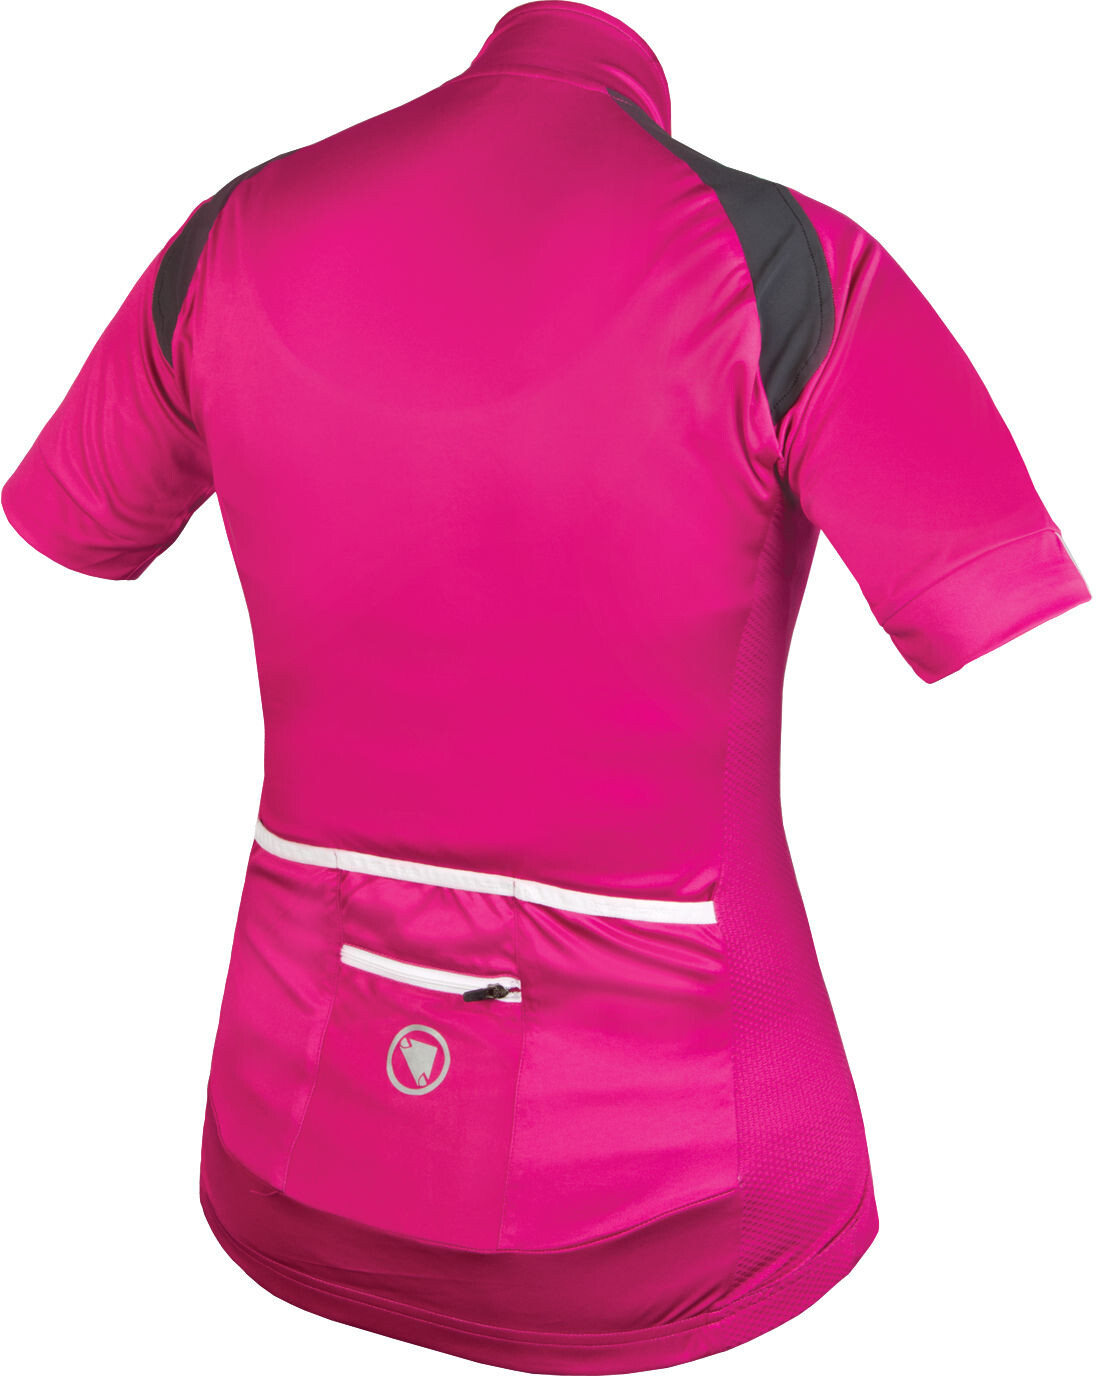 Endura Hyperon Bike Jersey Shortsleeve Women pink black at Addnature ... 71775f7d3